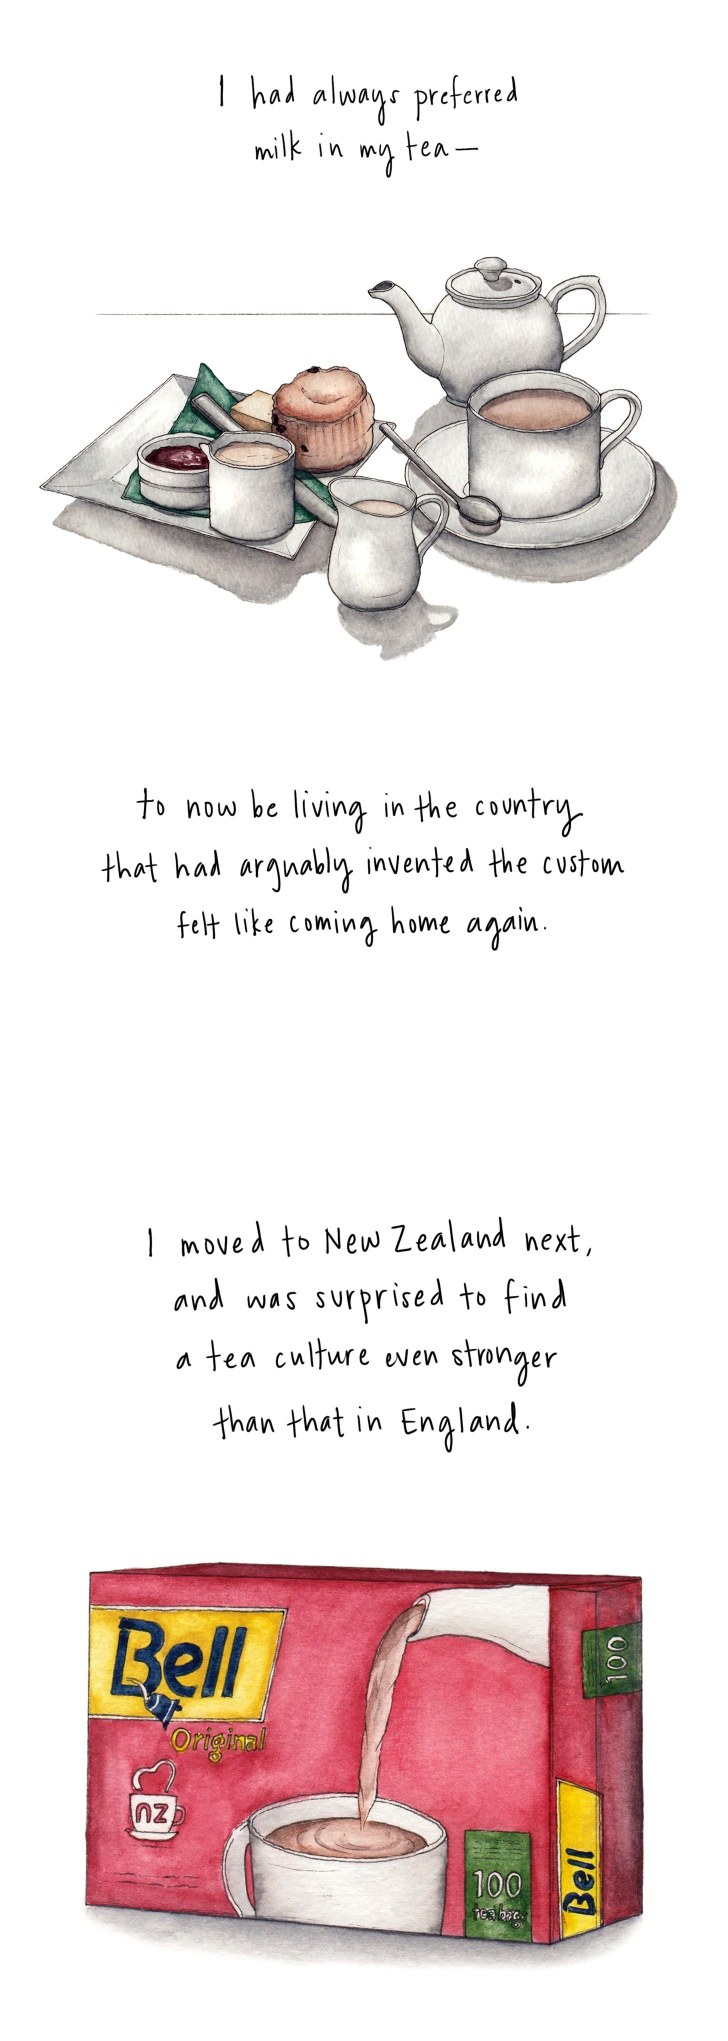 I had always preferred milk in my tea — to now be living in the country that had arguably invented the custom felt every bit like coming home again. I moved to New Zealand next and was surprised to find a tea culture even stronger than that in England.